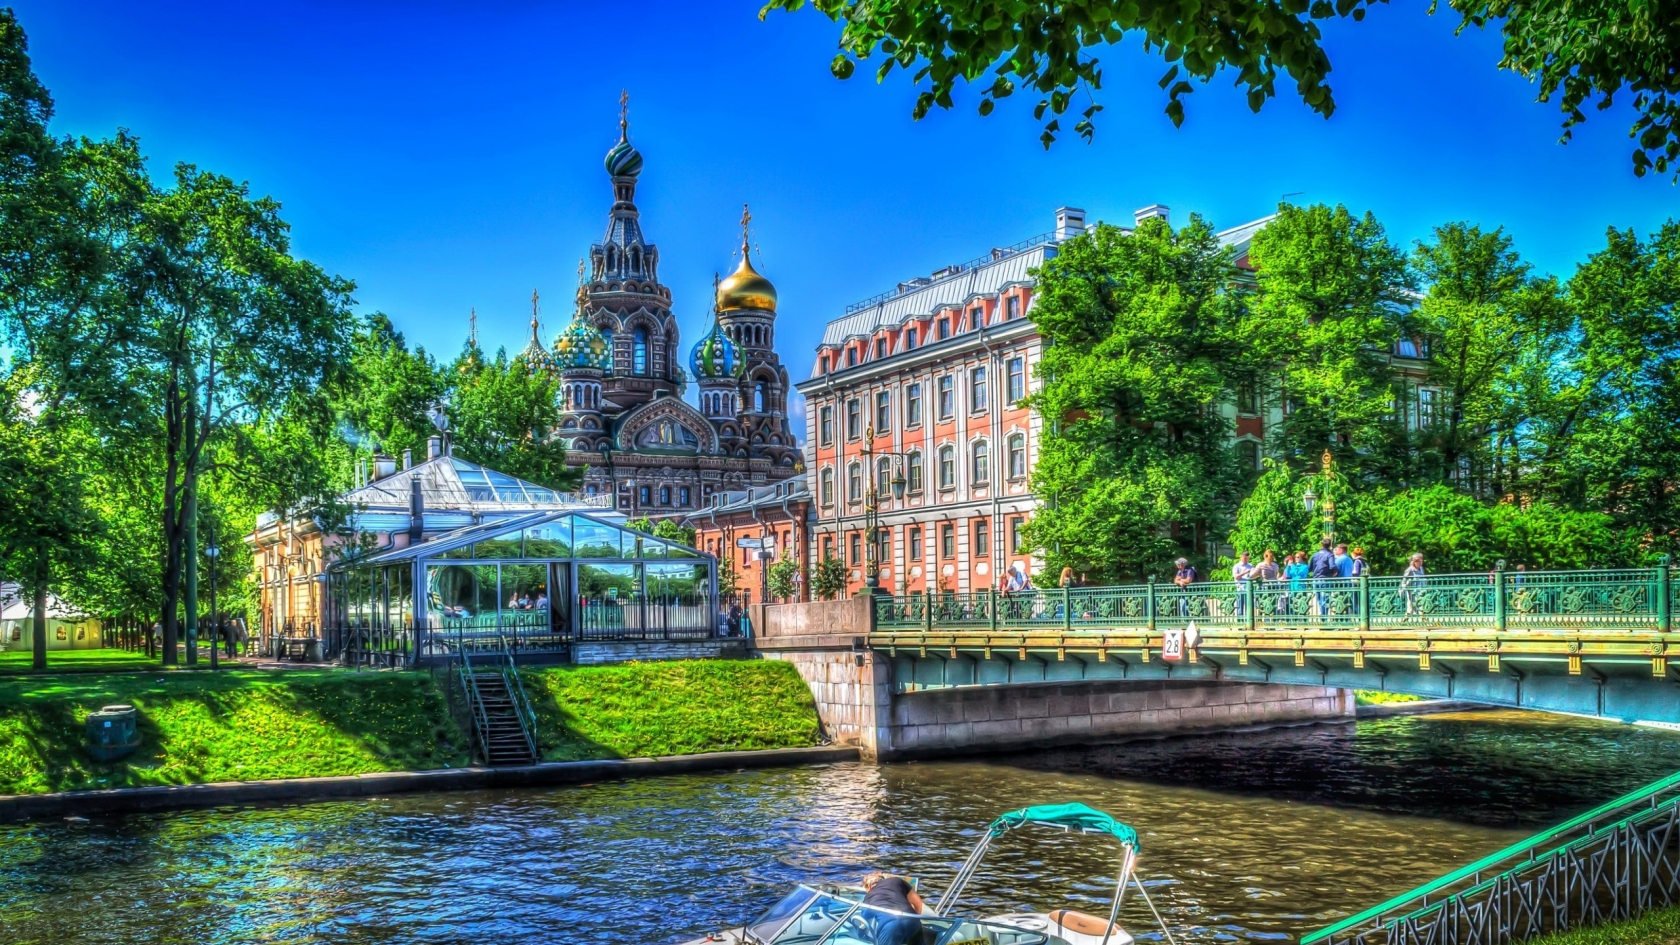 Saint Petersburg HDR  for 1680 x 945 HDTV resolution